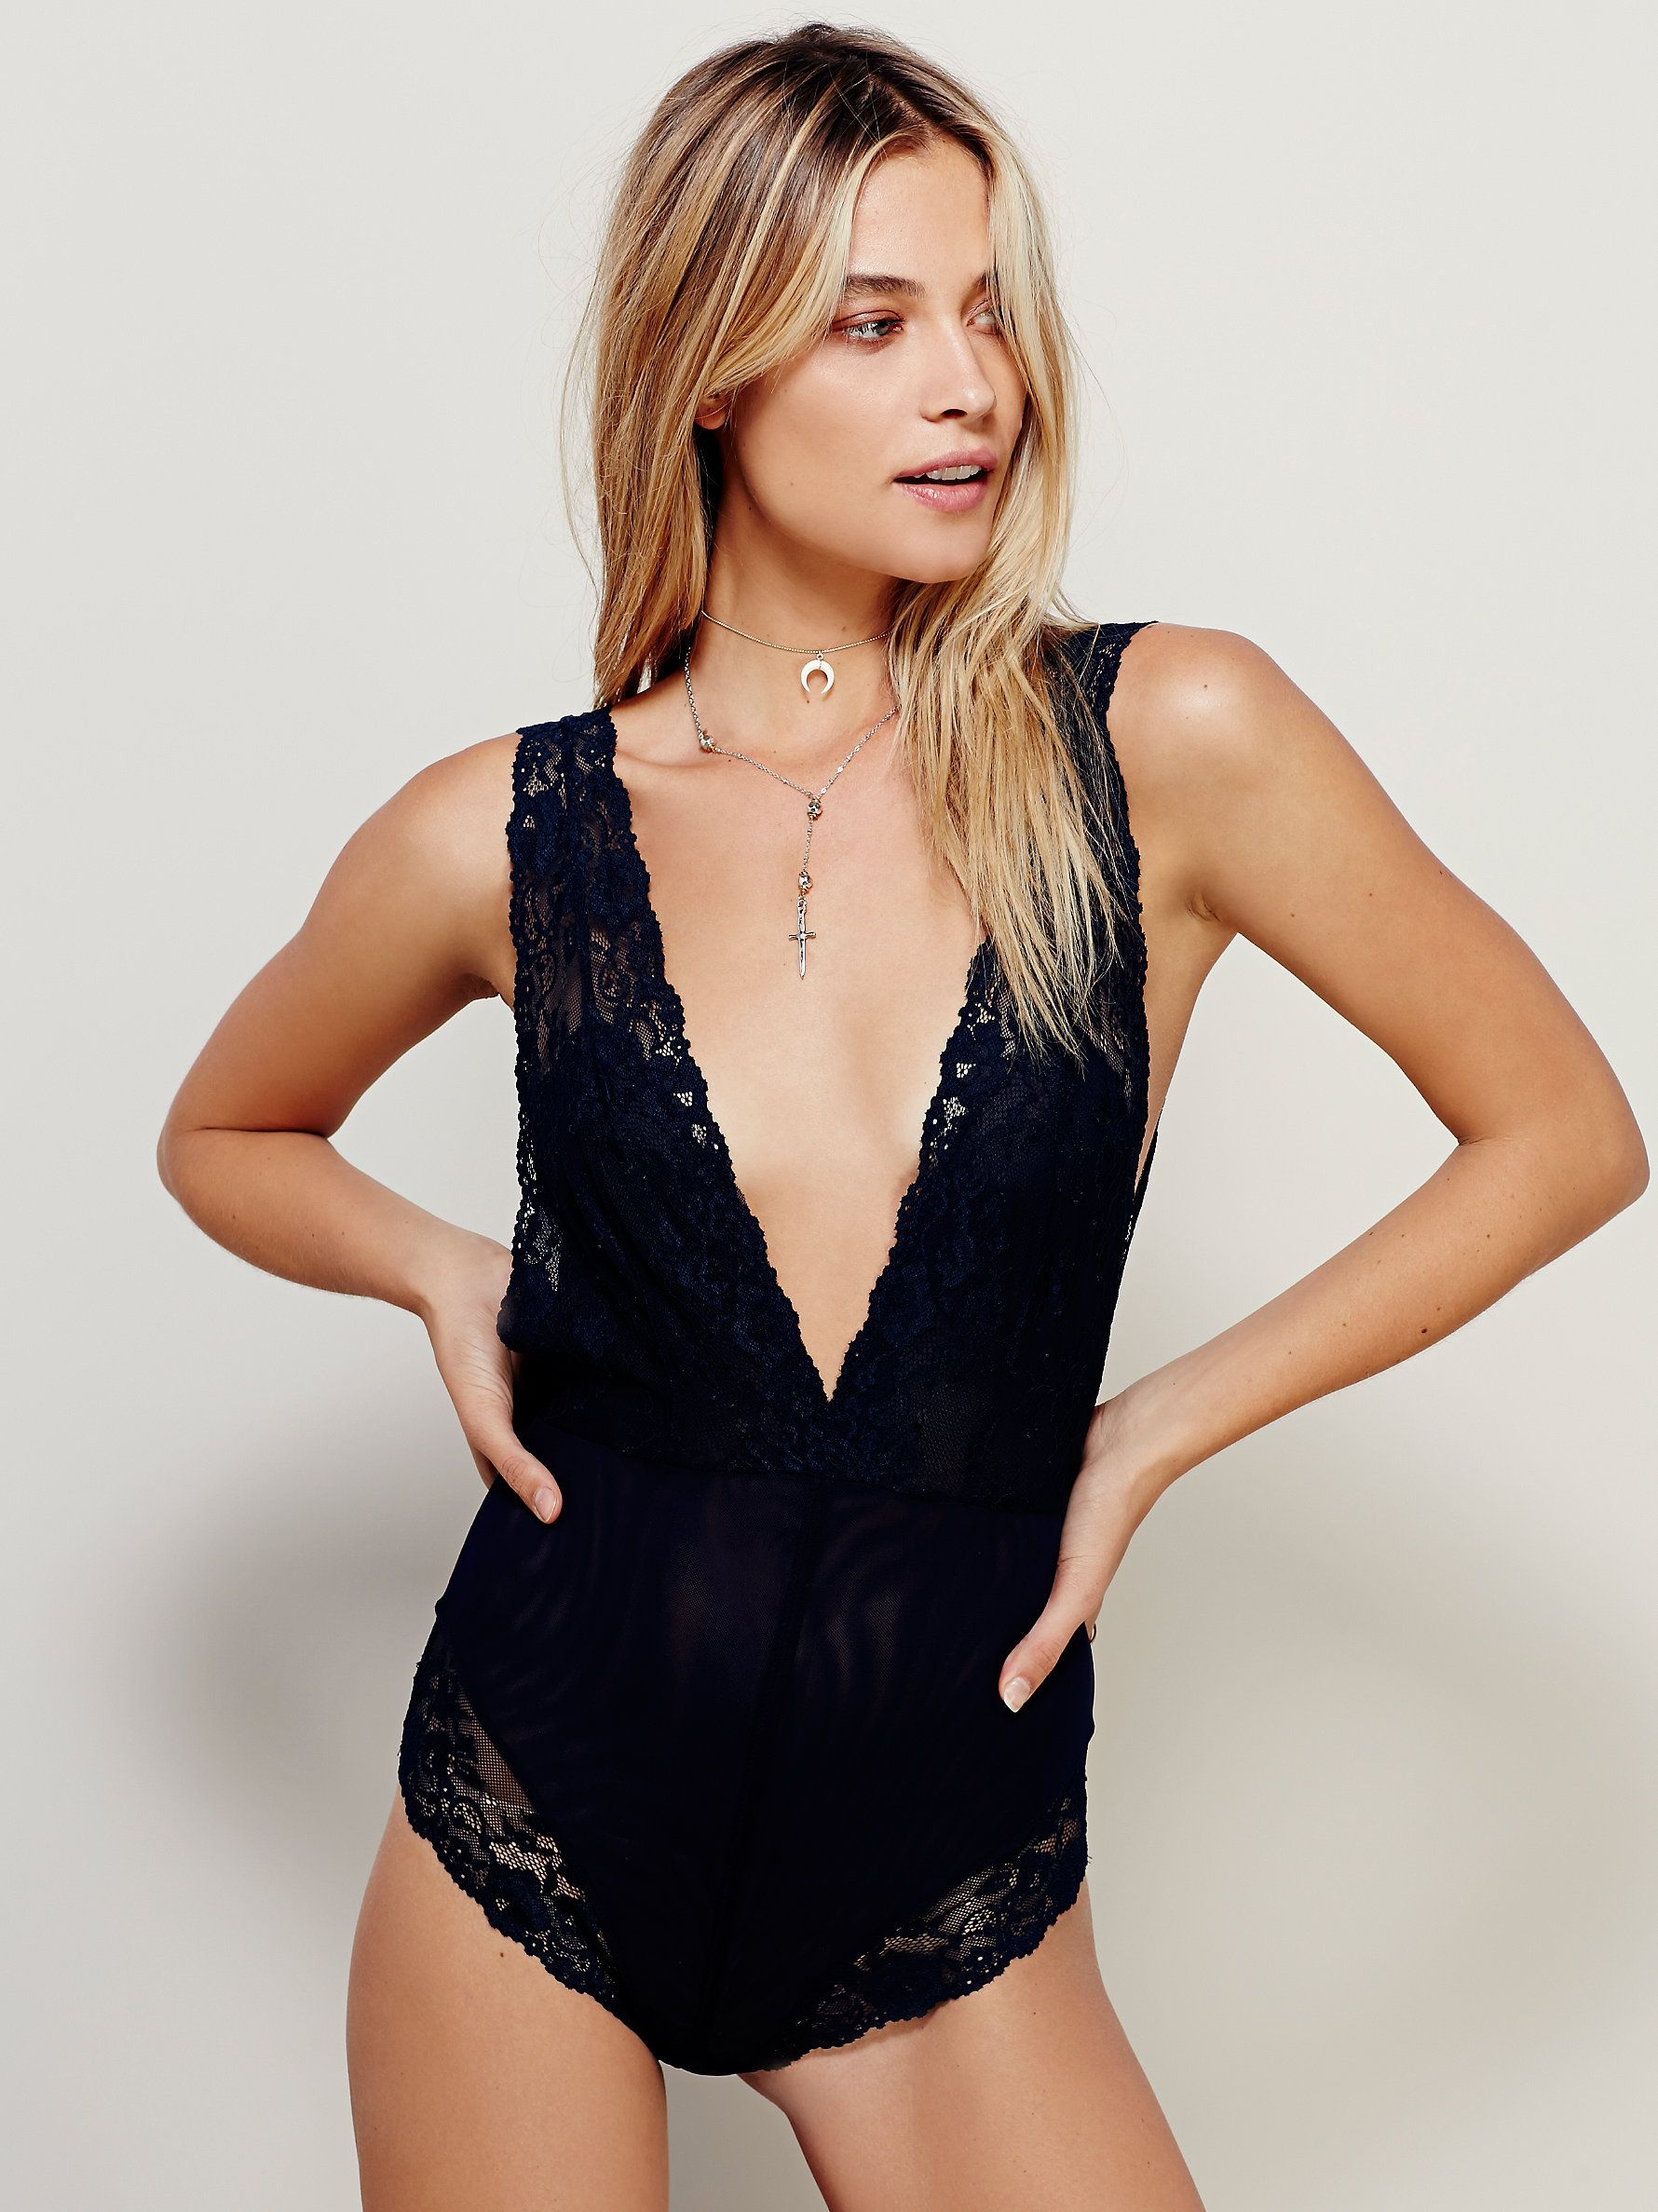 Lace bodysuit with jeans  Midnight Hours Bodysuit  Sheer mesh bodysuit with a sheer lace top